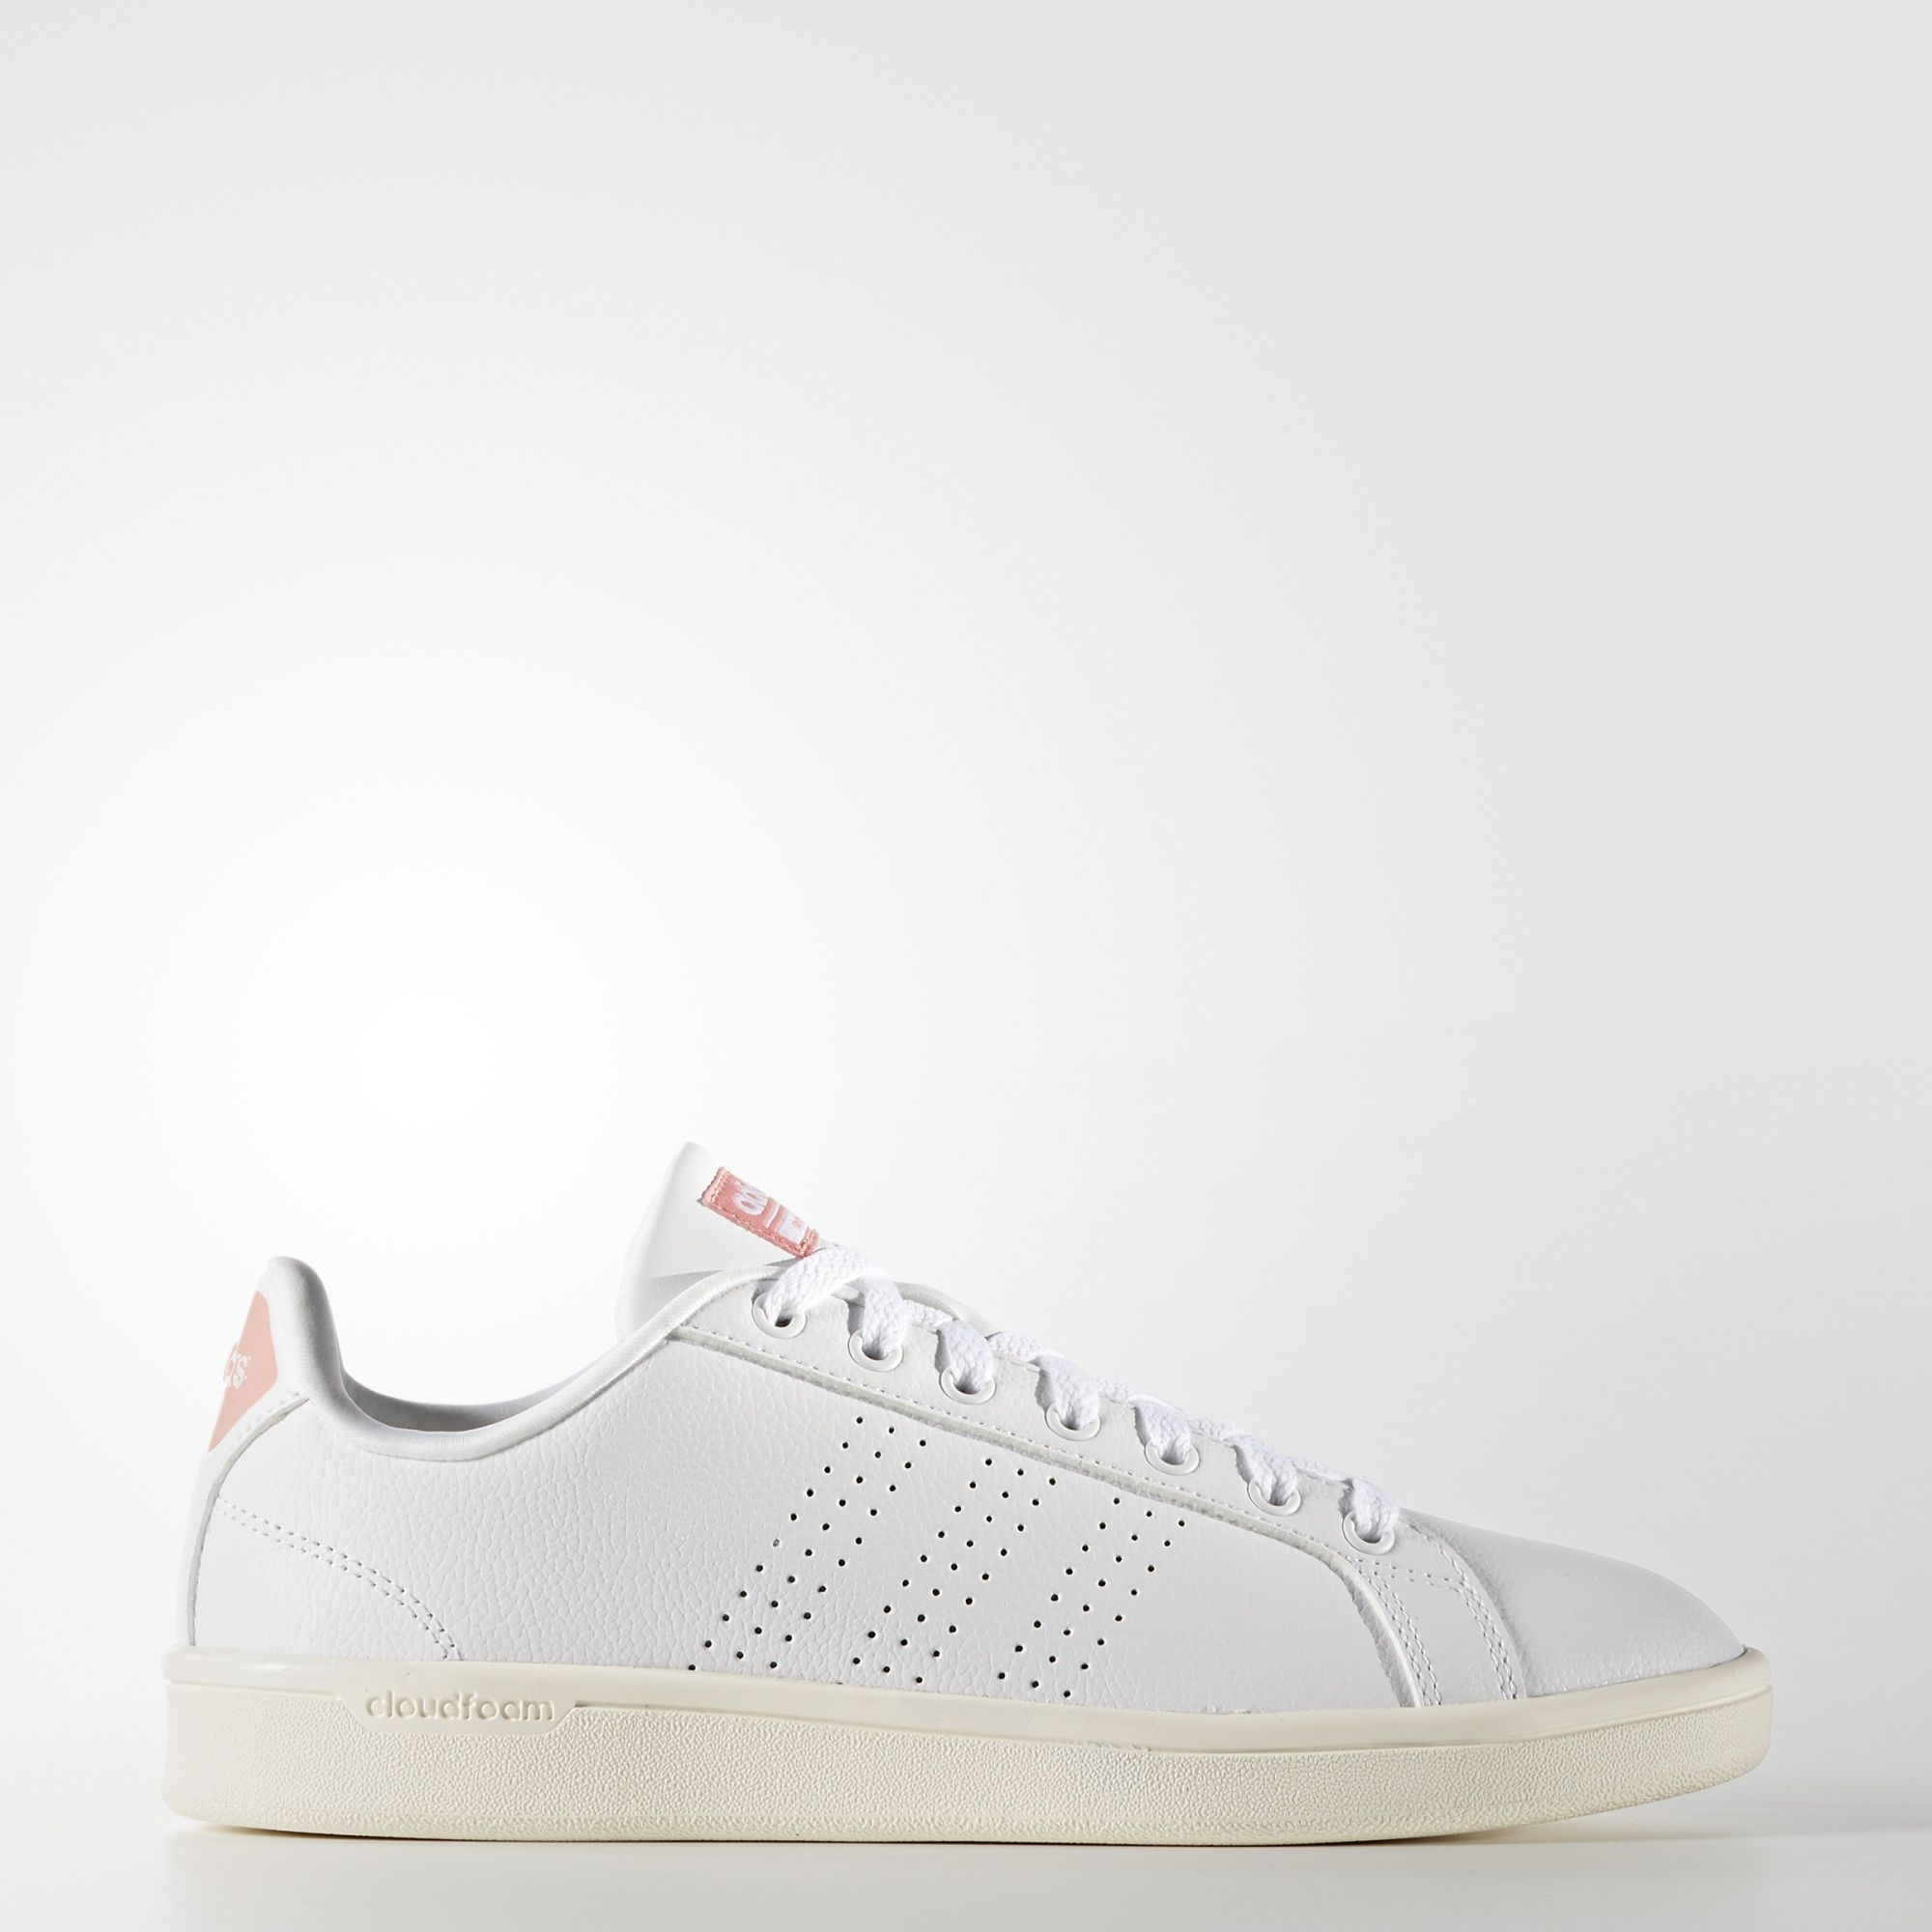 adidas neo femme, adidas - Chaussure Cloudfoam Advantage Clean Footwear White/Ray Pink AW3974